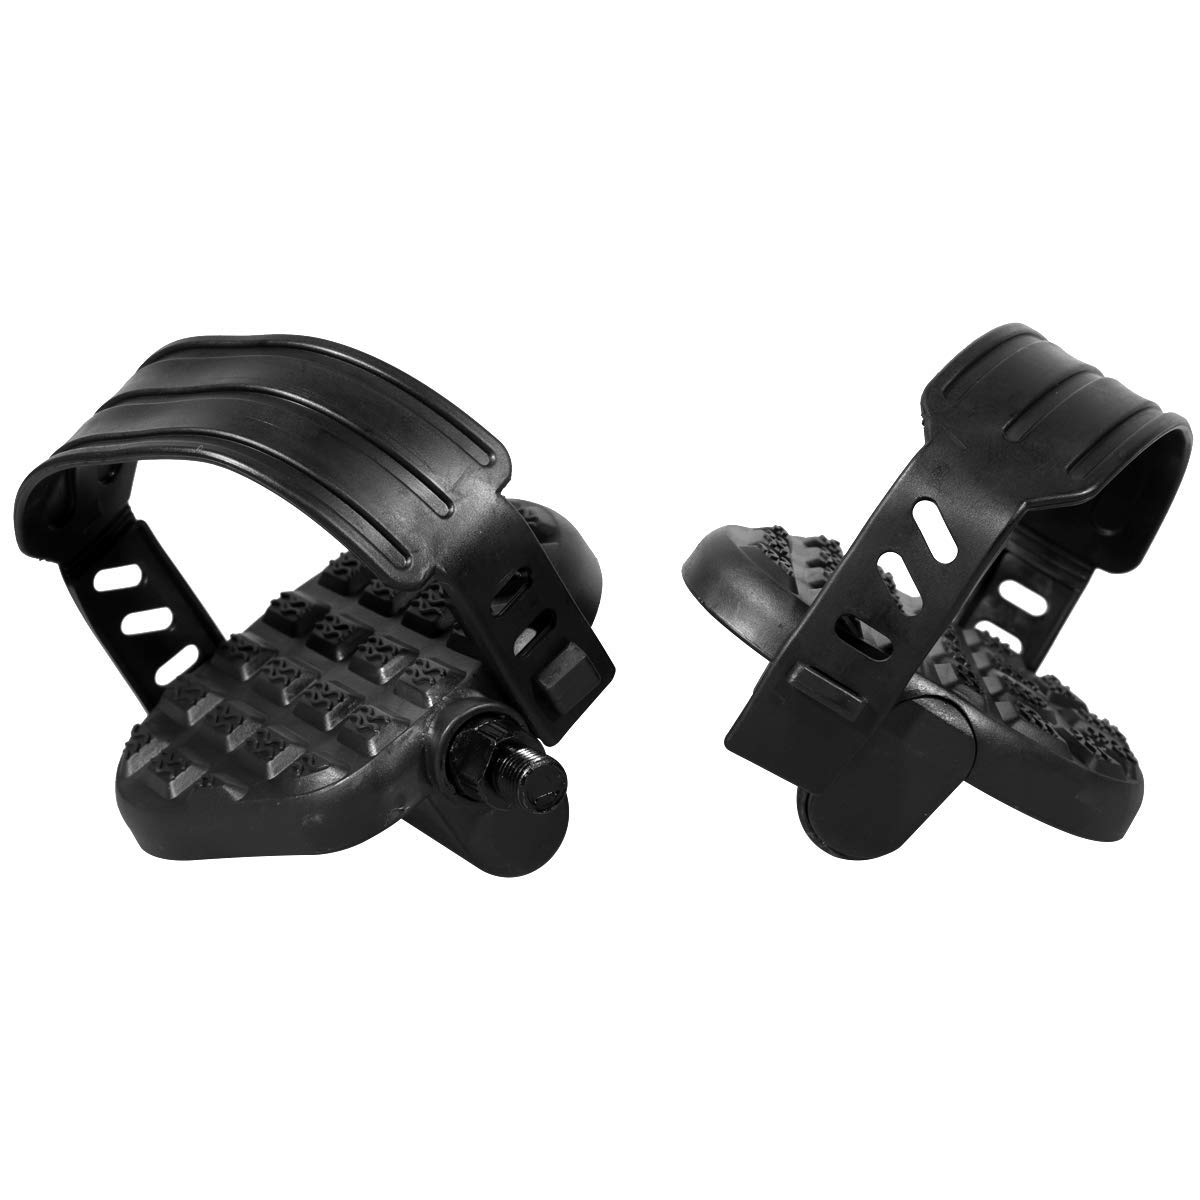 Spin Bike HILAND Replacement Bike Pedals with Strap for Stationary Bike Recumbent Exerciser Bicycle Black